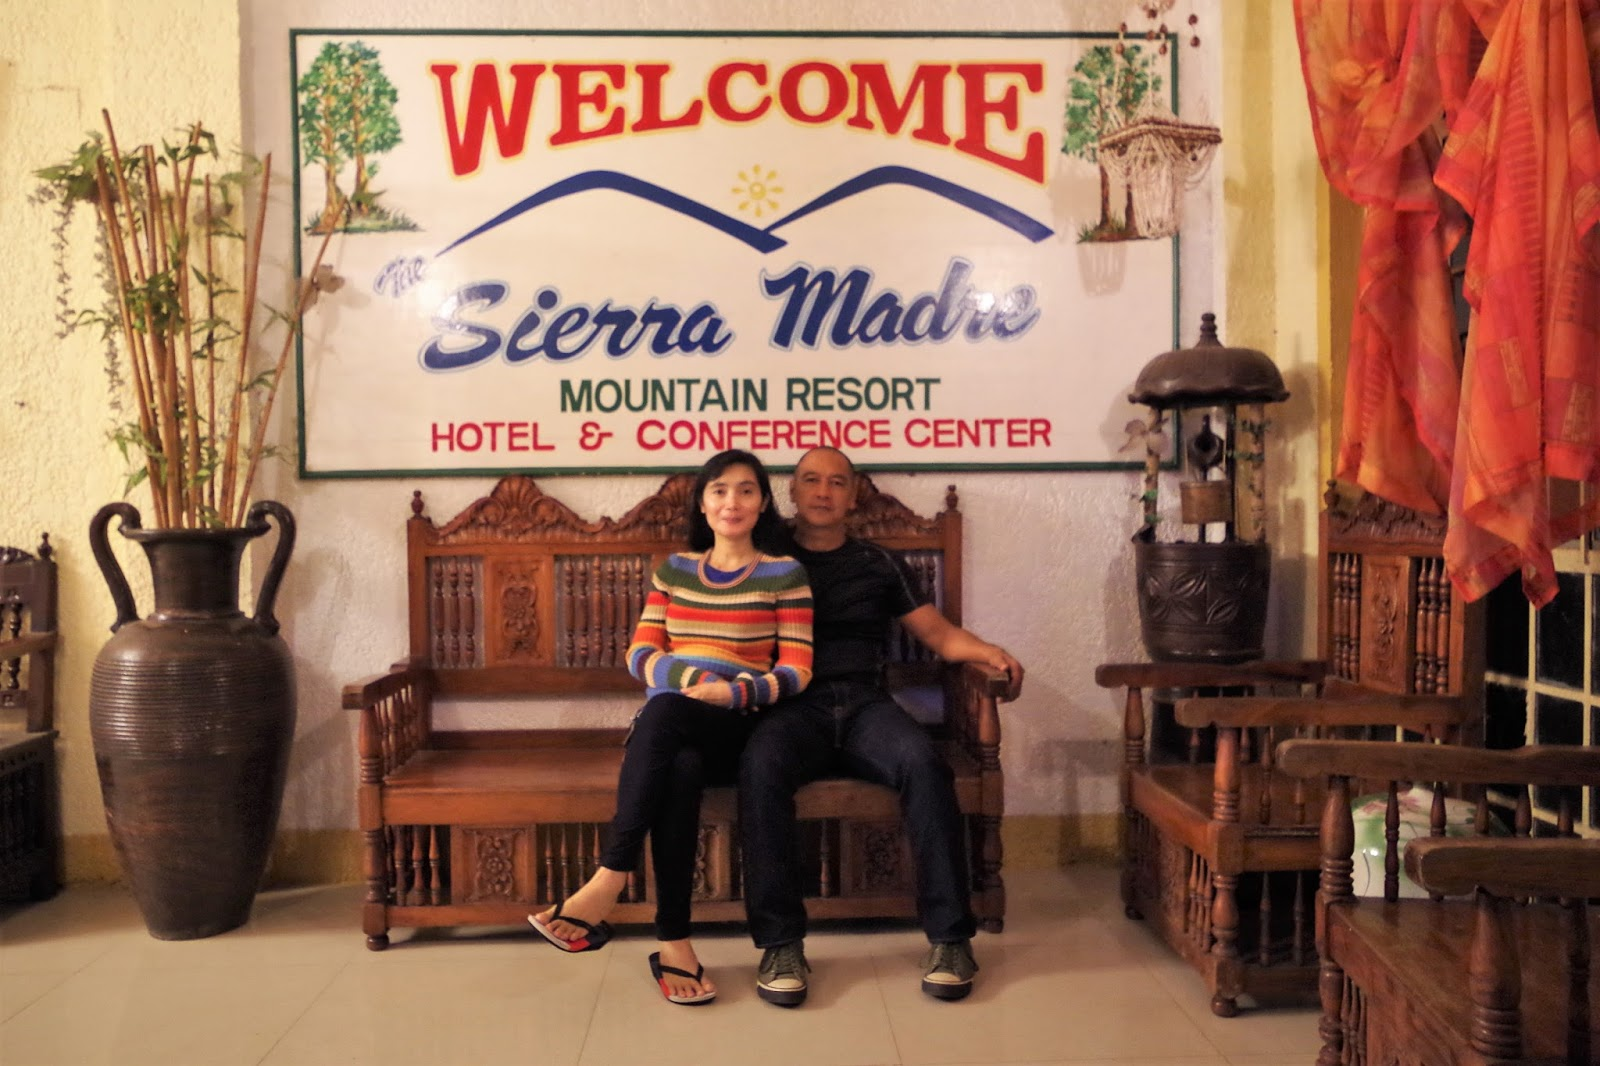 the sierra madre mountain resort-hotel and conference center